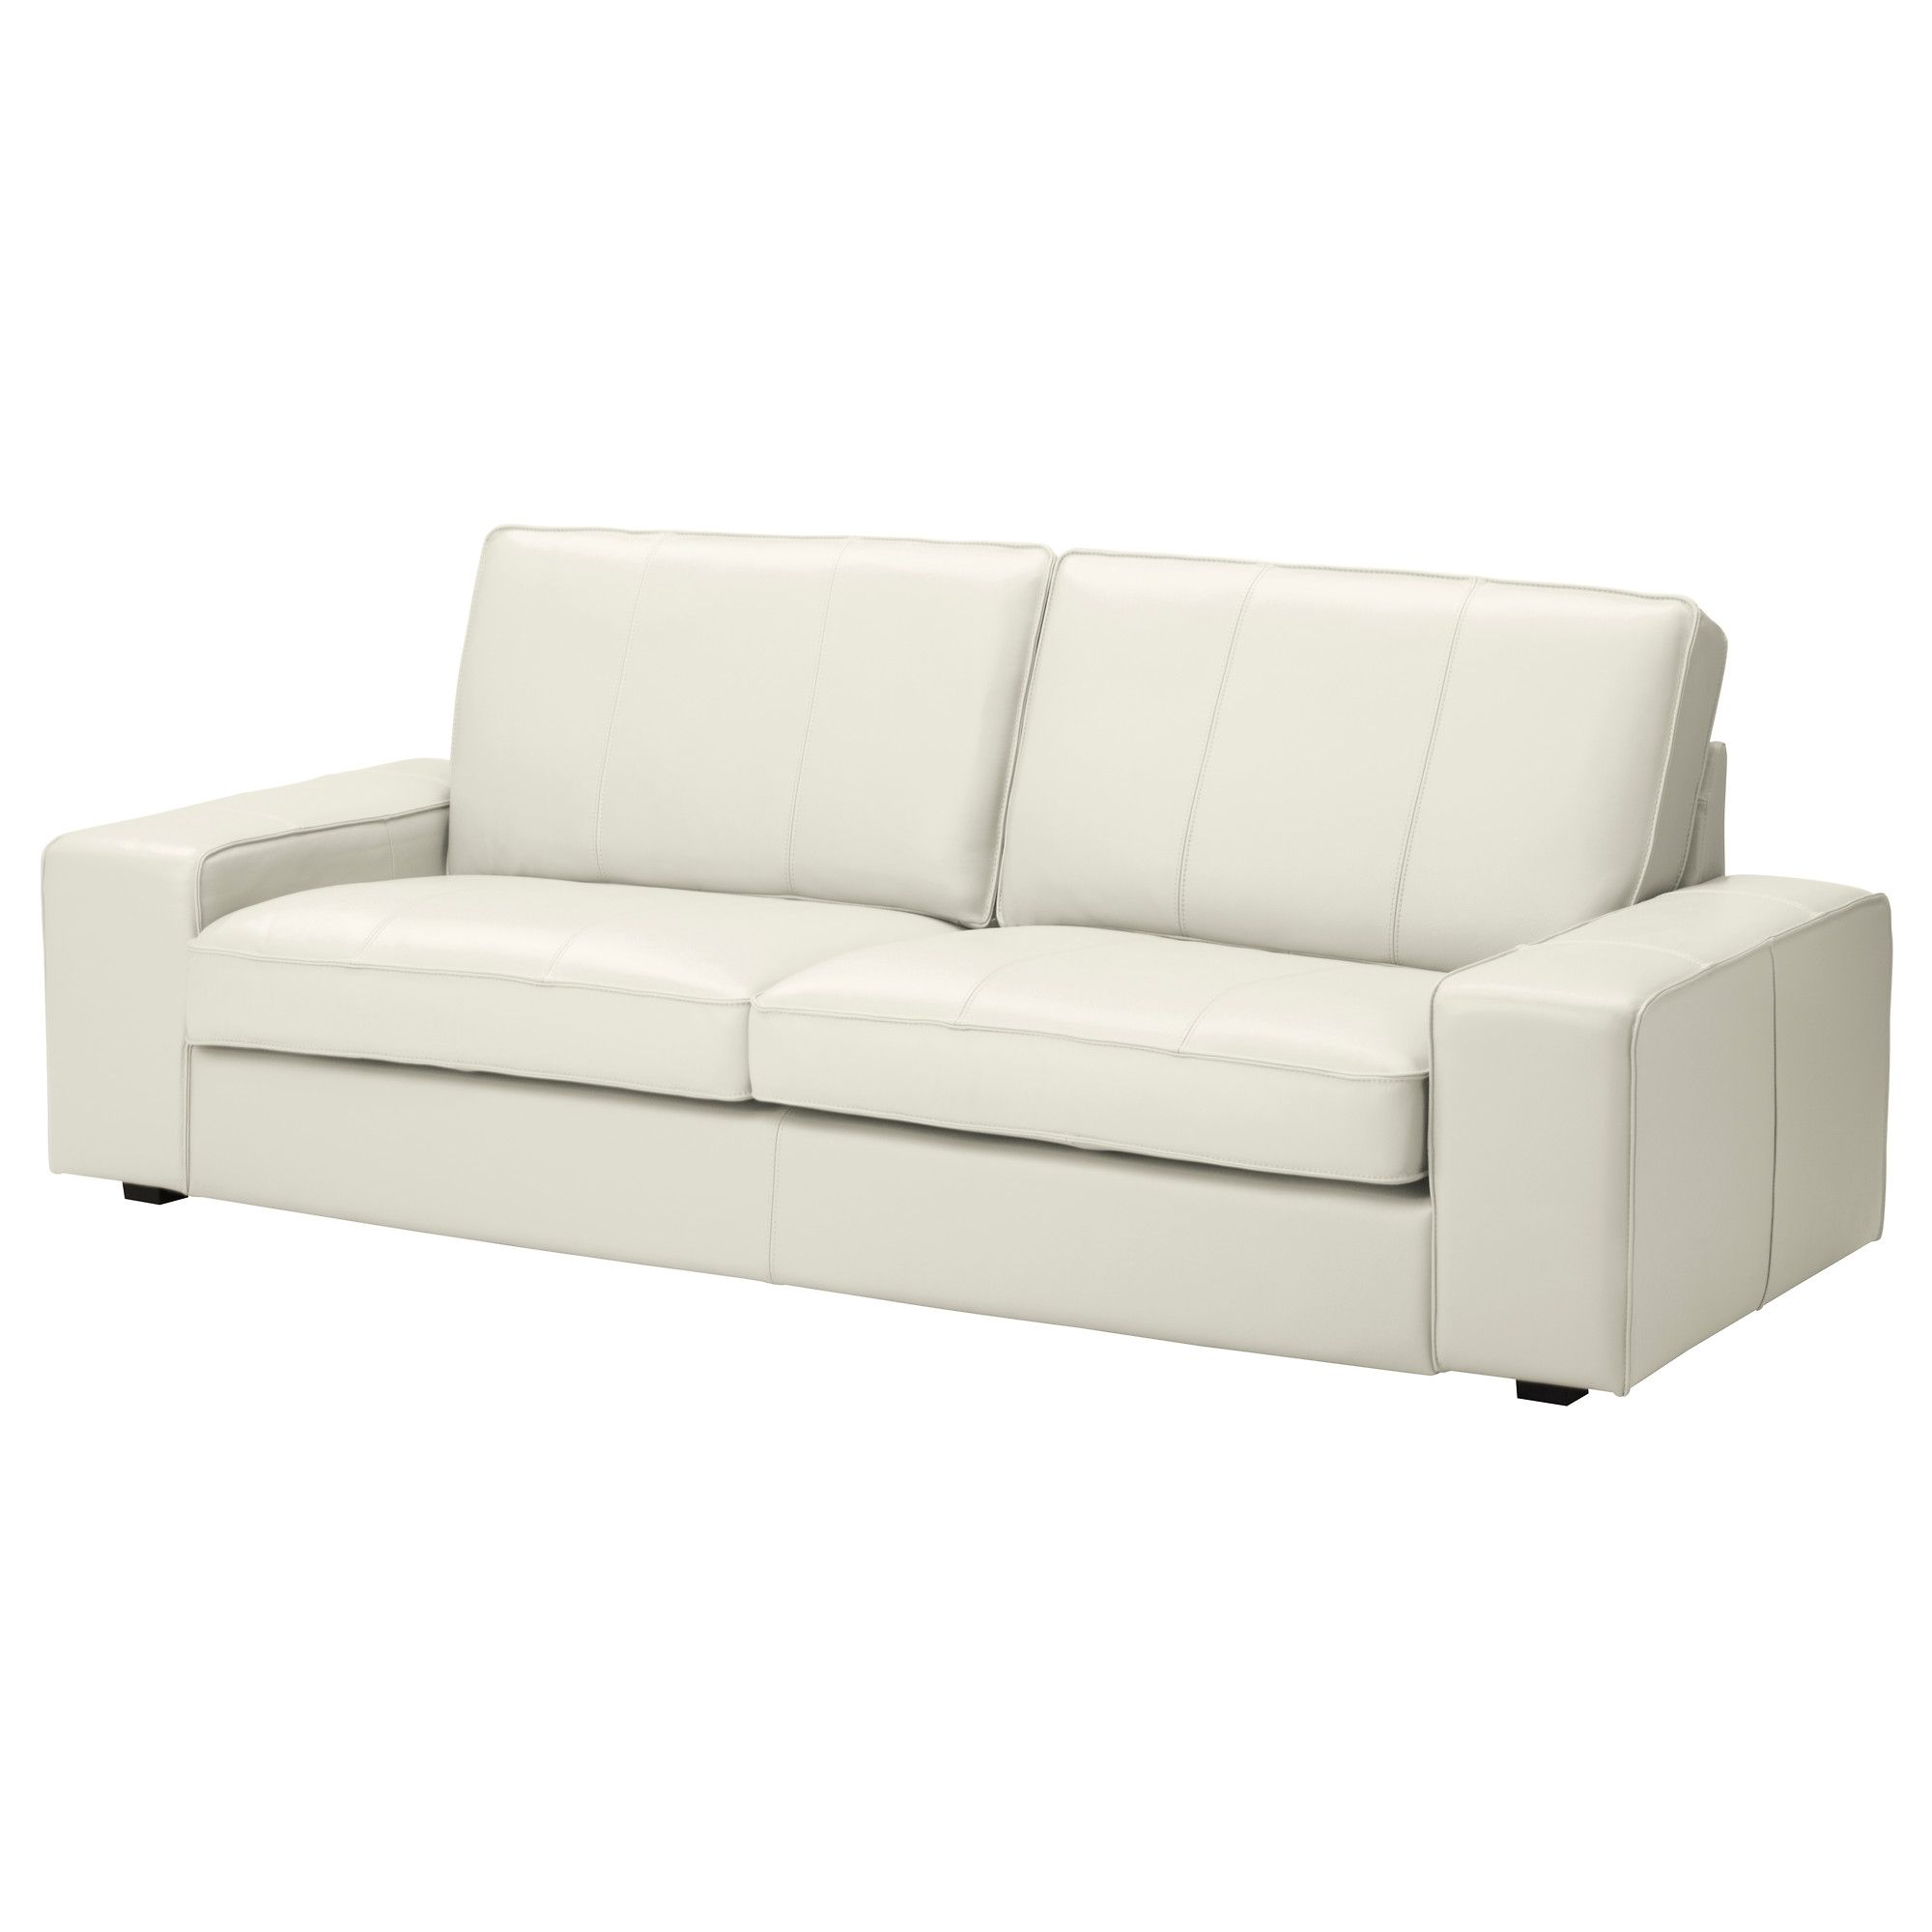 Ikea White Leather Couch Sofas: KIVIK Sofa - Grann White - IKEA